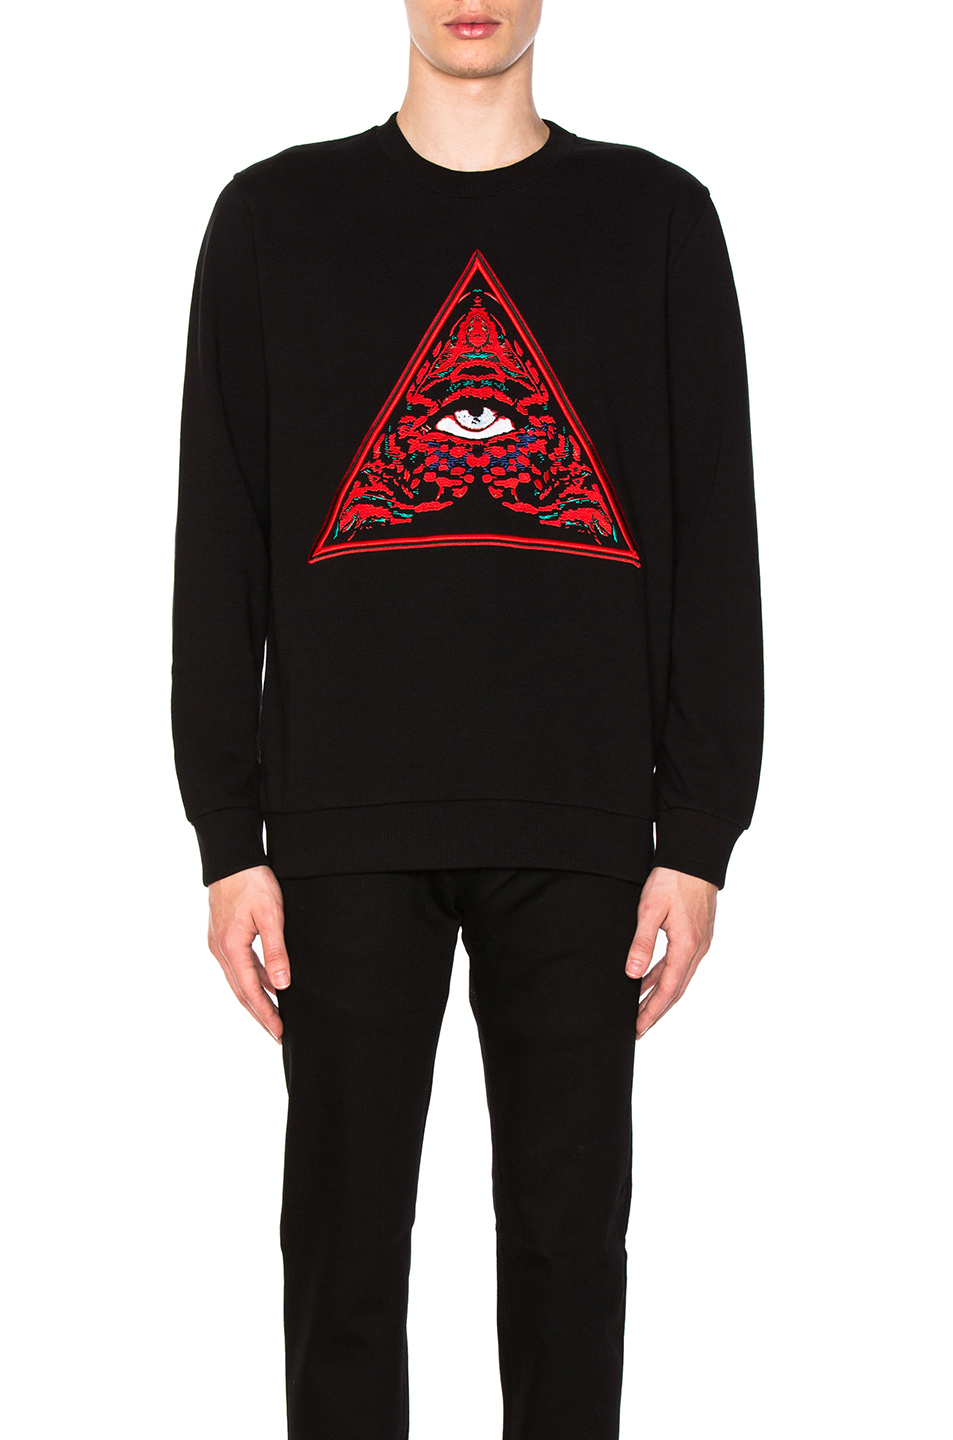 Givenchy Triangle Realize Sweatshirt in Black